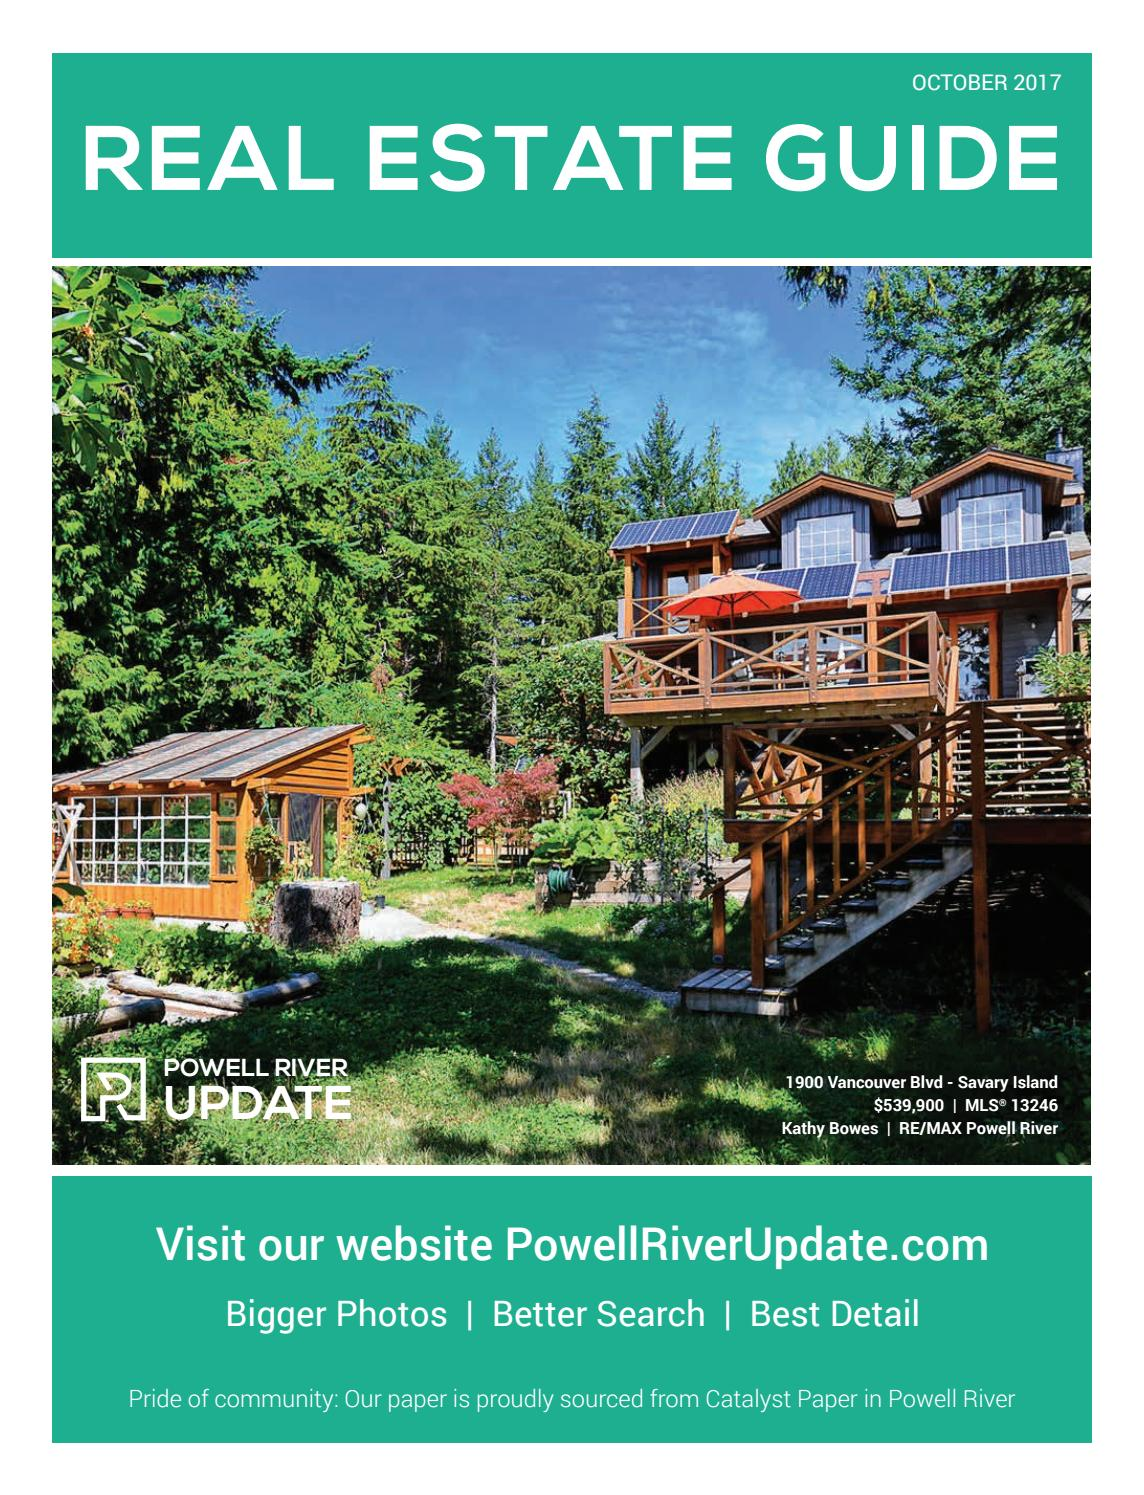 Powell River Update Real Estate Guide October 2017 by CGM Marketing ...